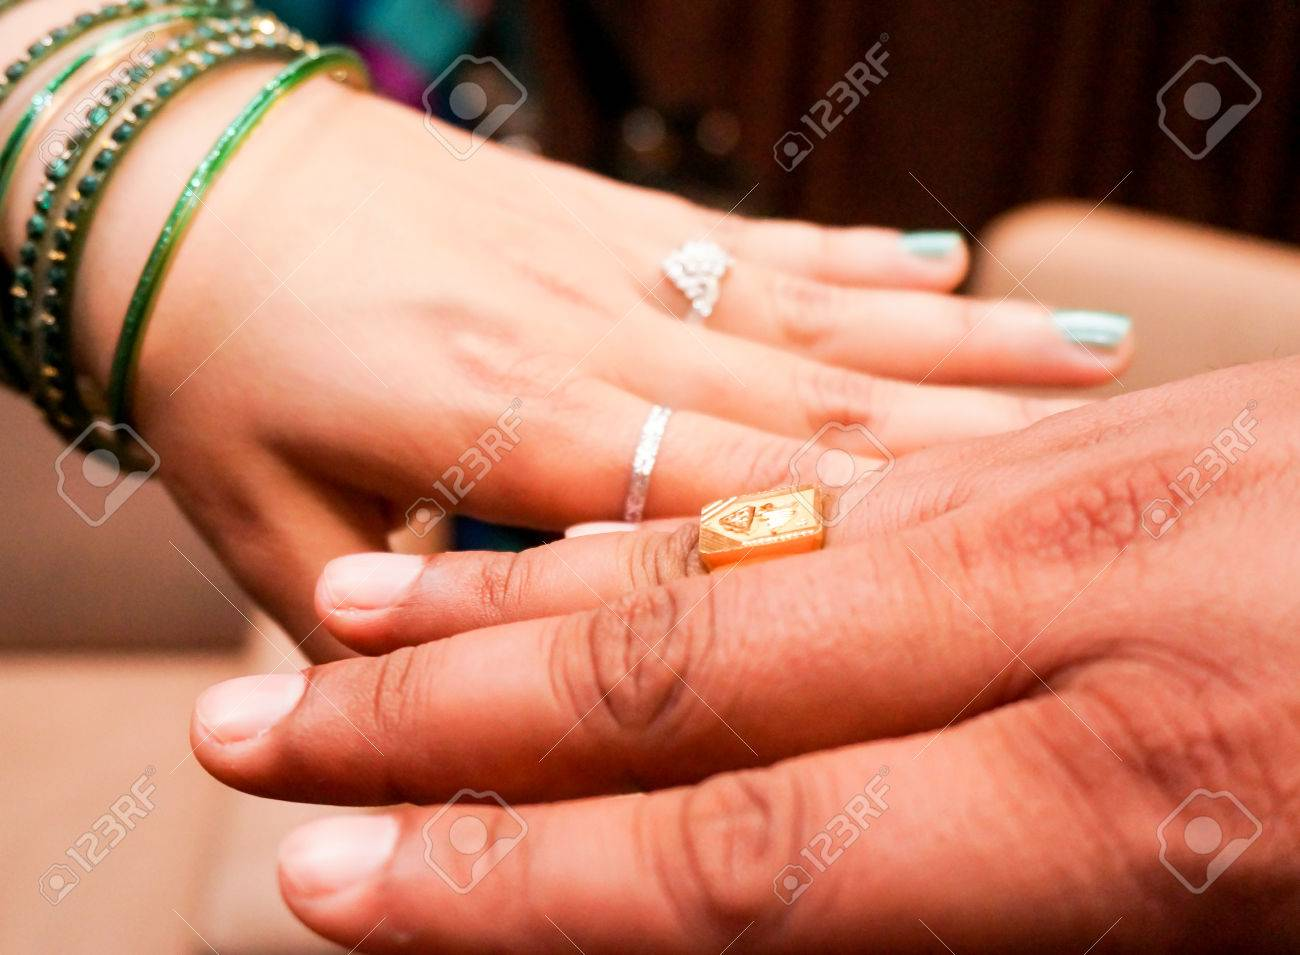 Indian Bride And Groom Wearing The Engagement Or Wedding Rings